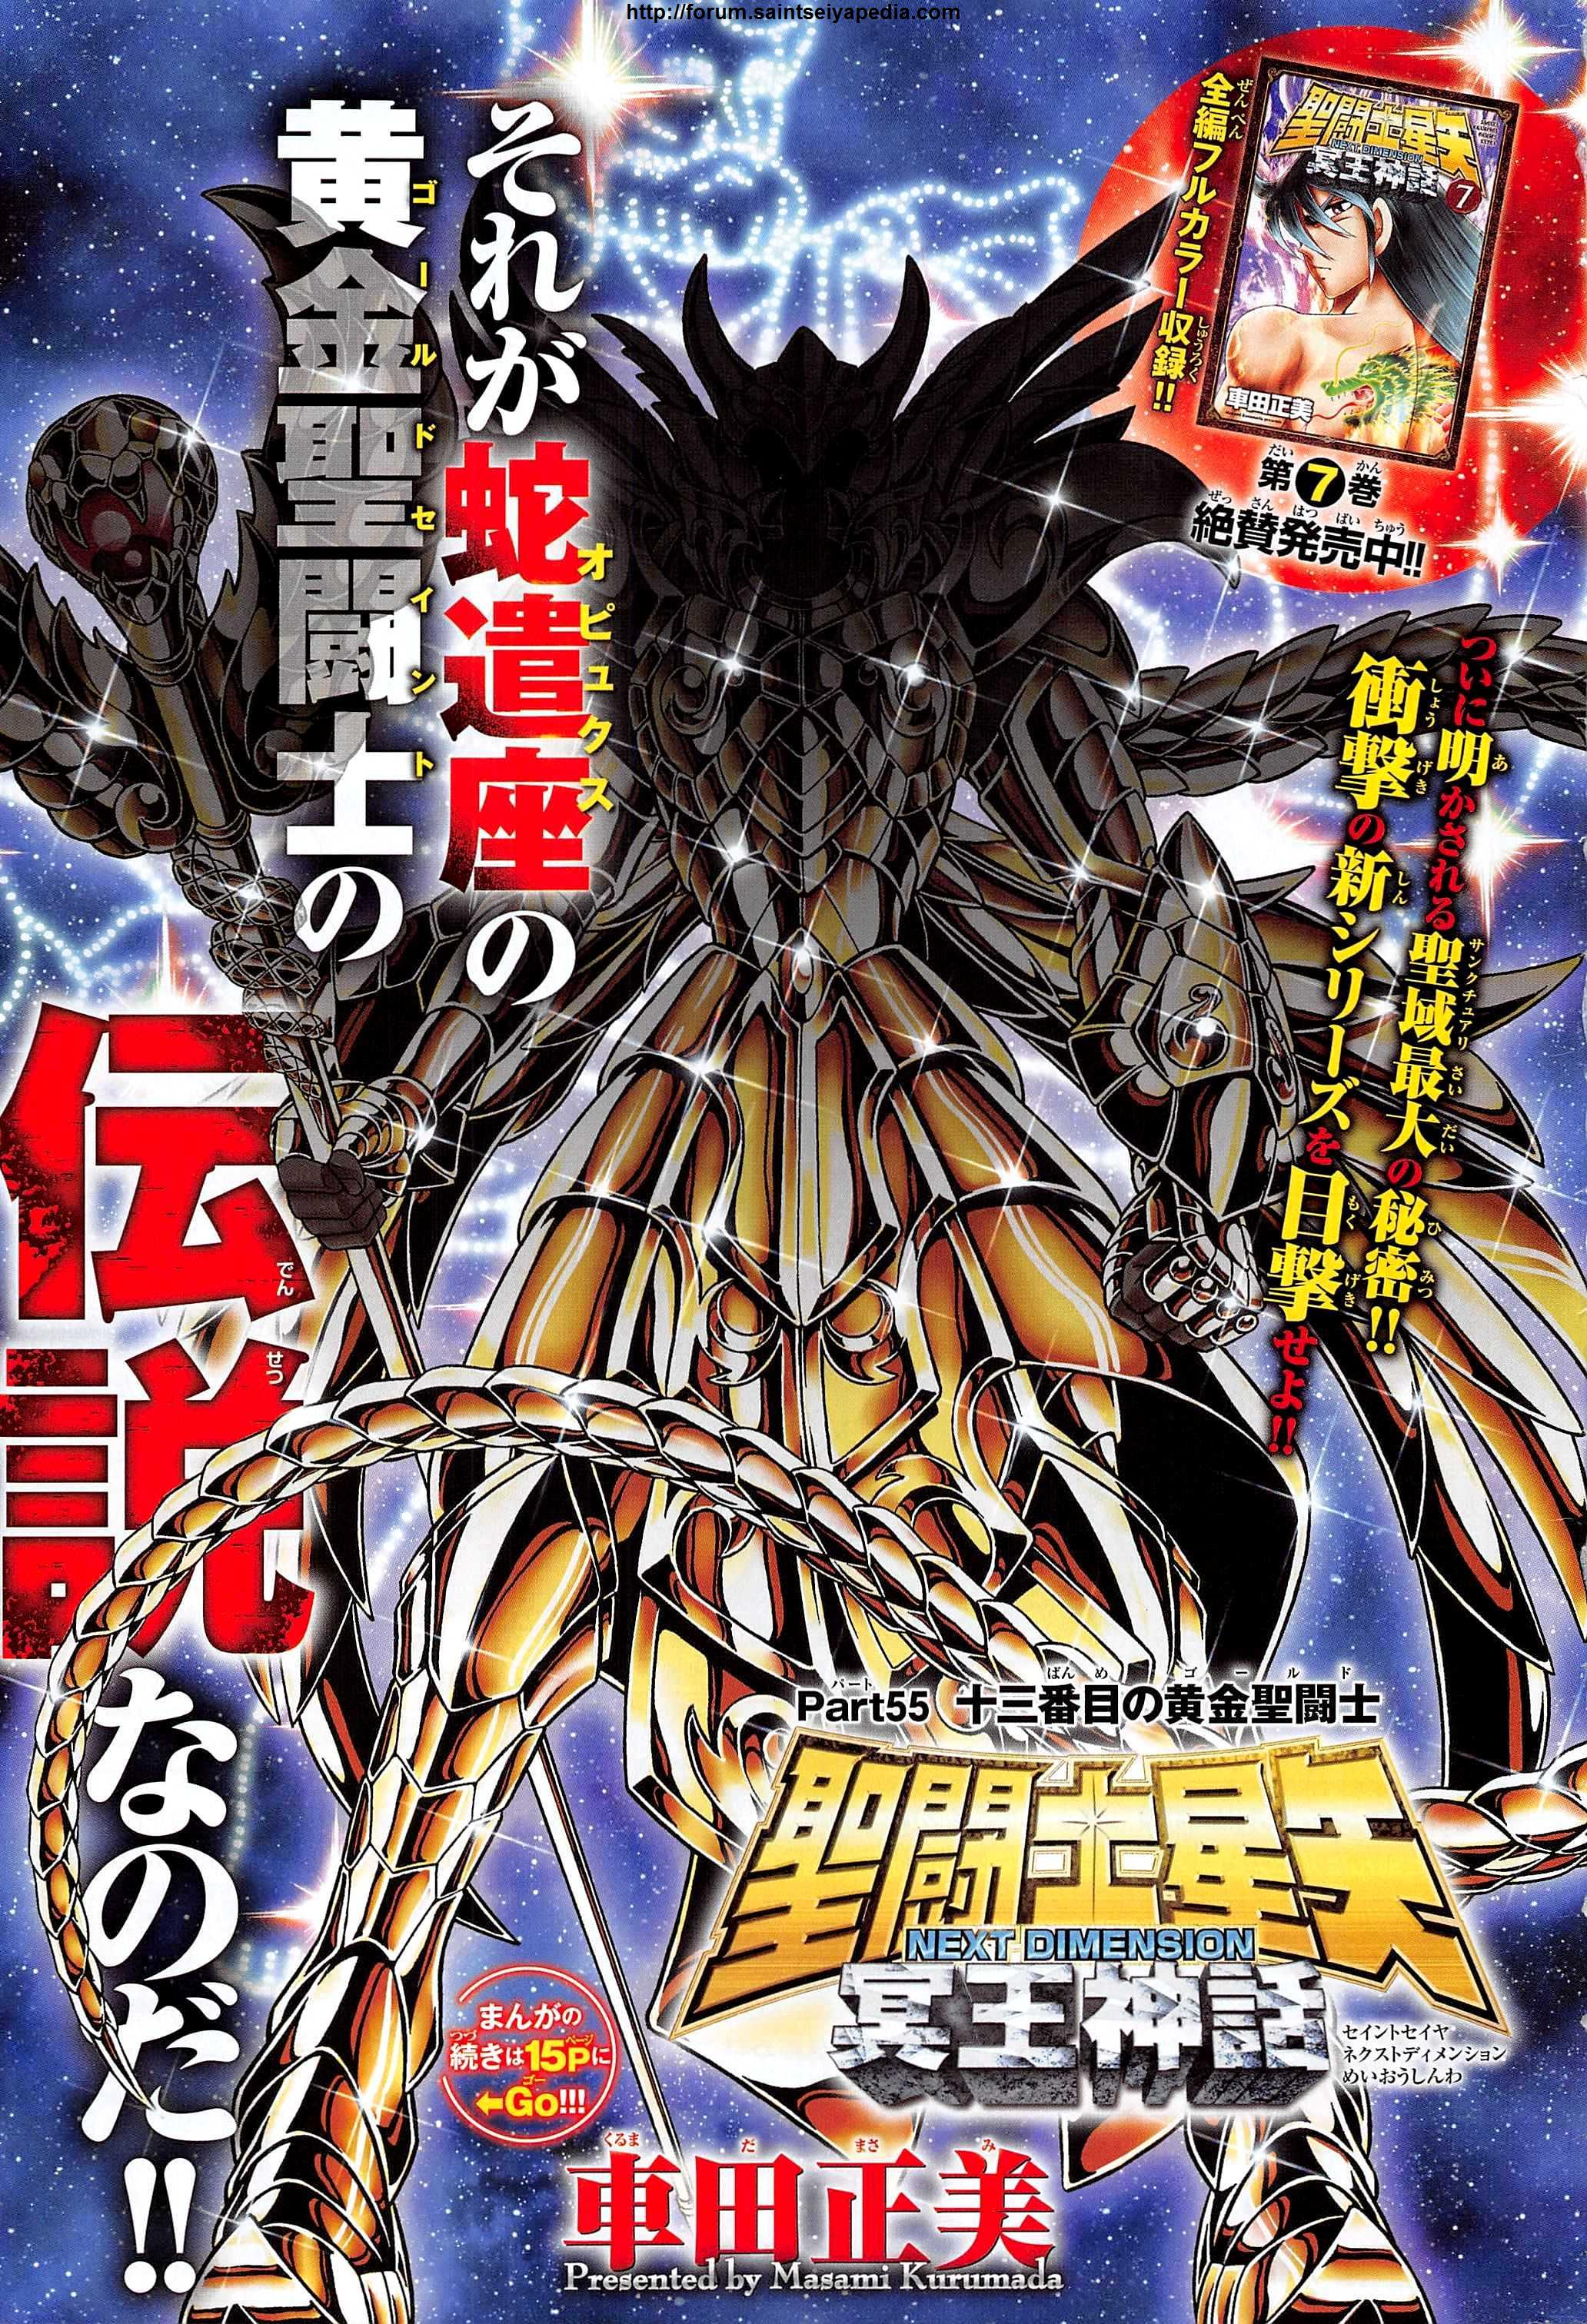 Saint-Seiya-The-Next-Dimension-Chapitre-55-04